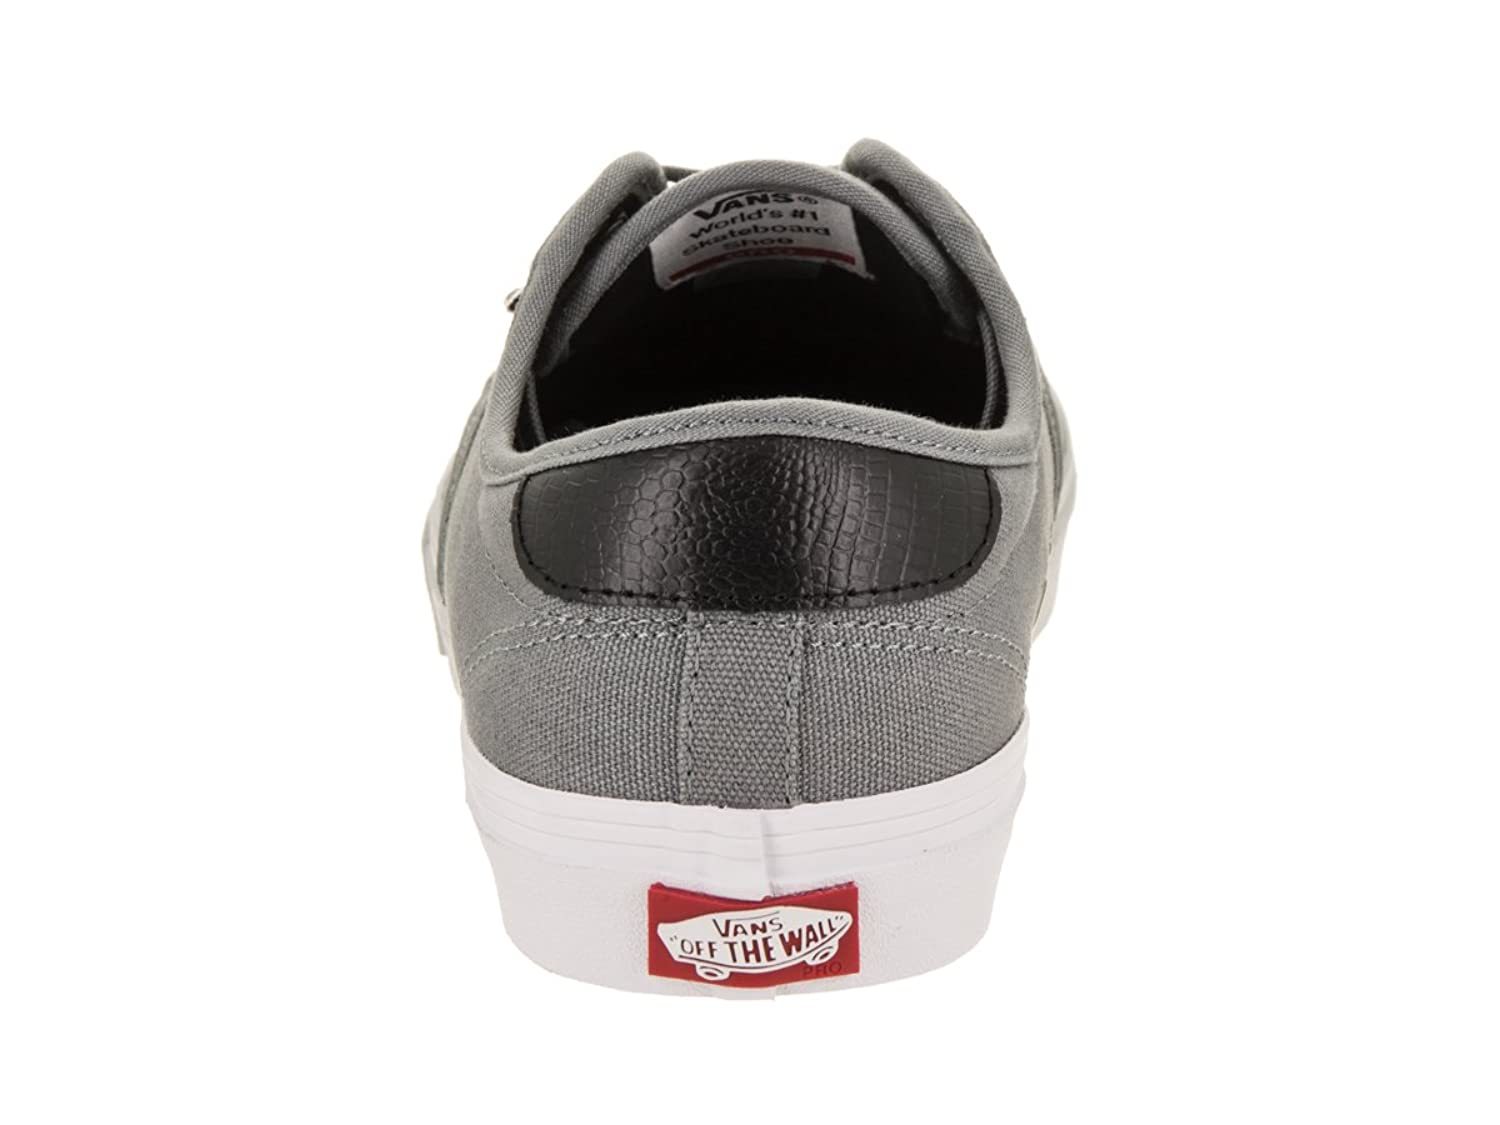 4d0d8745cbb272 Vans Men s Chima Ferguson Pro Skateboarding Sneakers Dark Grey Burnished  Leather 6.5 D(M) US  Buy Online at Low Prices in India - Amazon.in